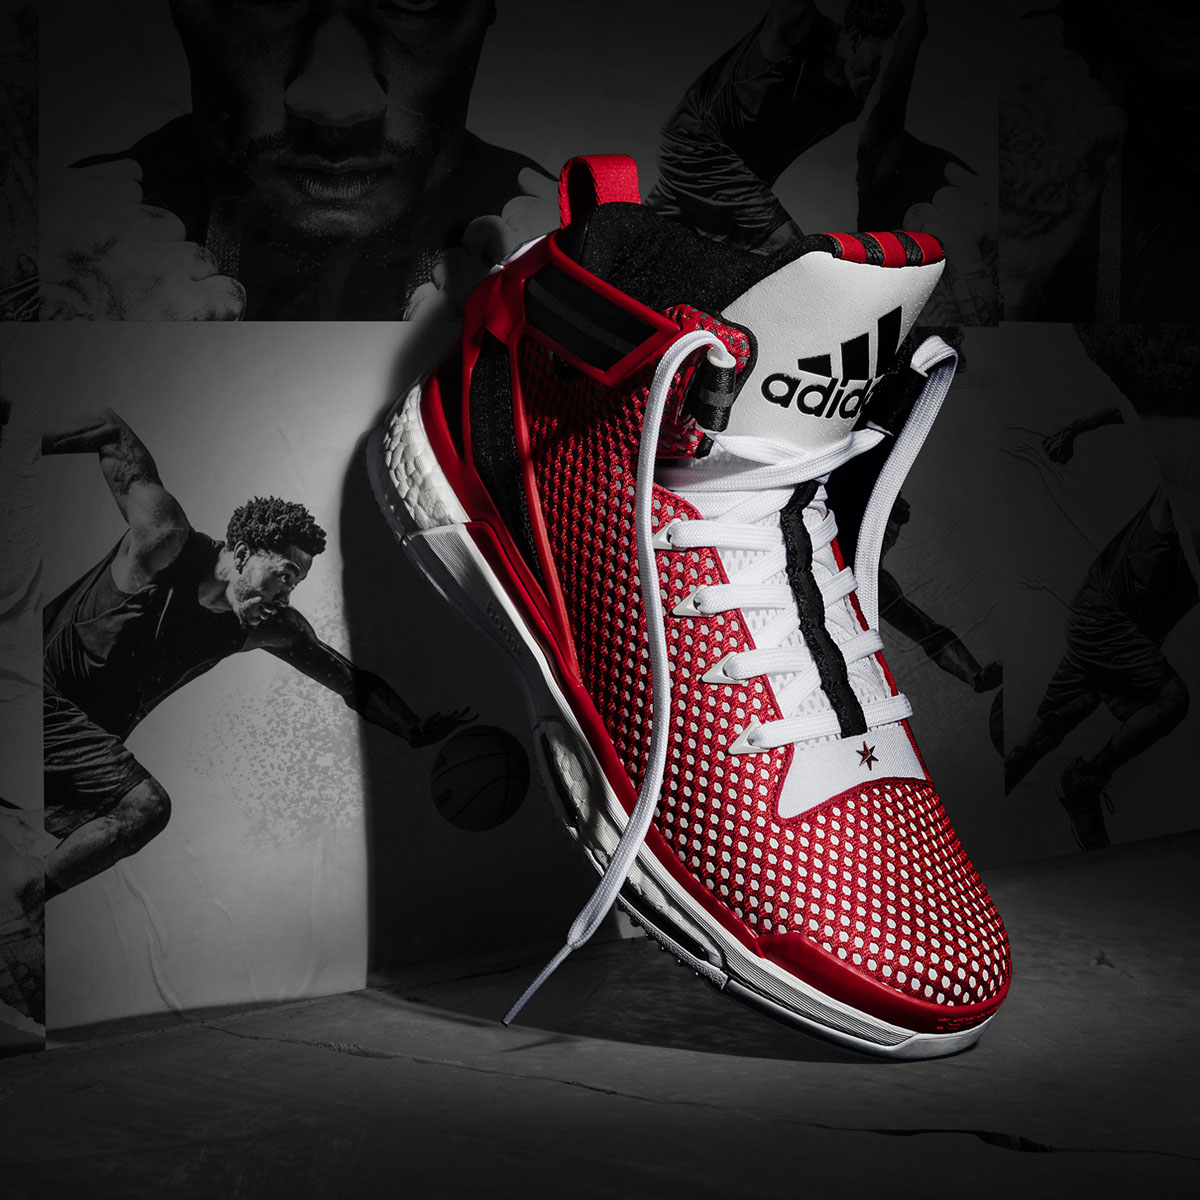 Adidas Performance Men's D Rose 6 Boost Basketball Shoe Pictures of the new derrick rose shoes